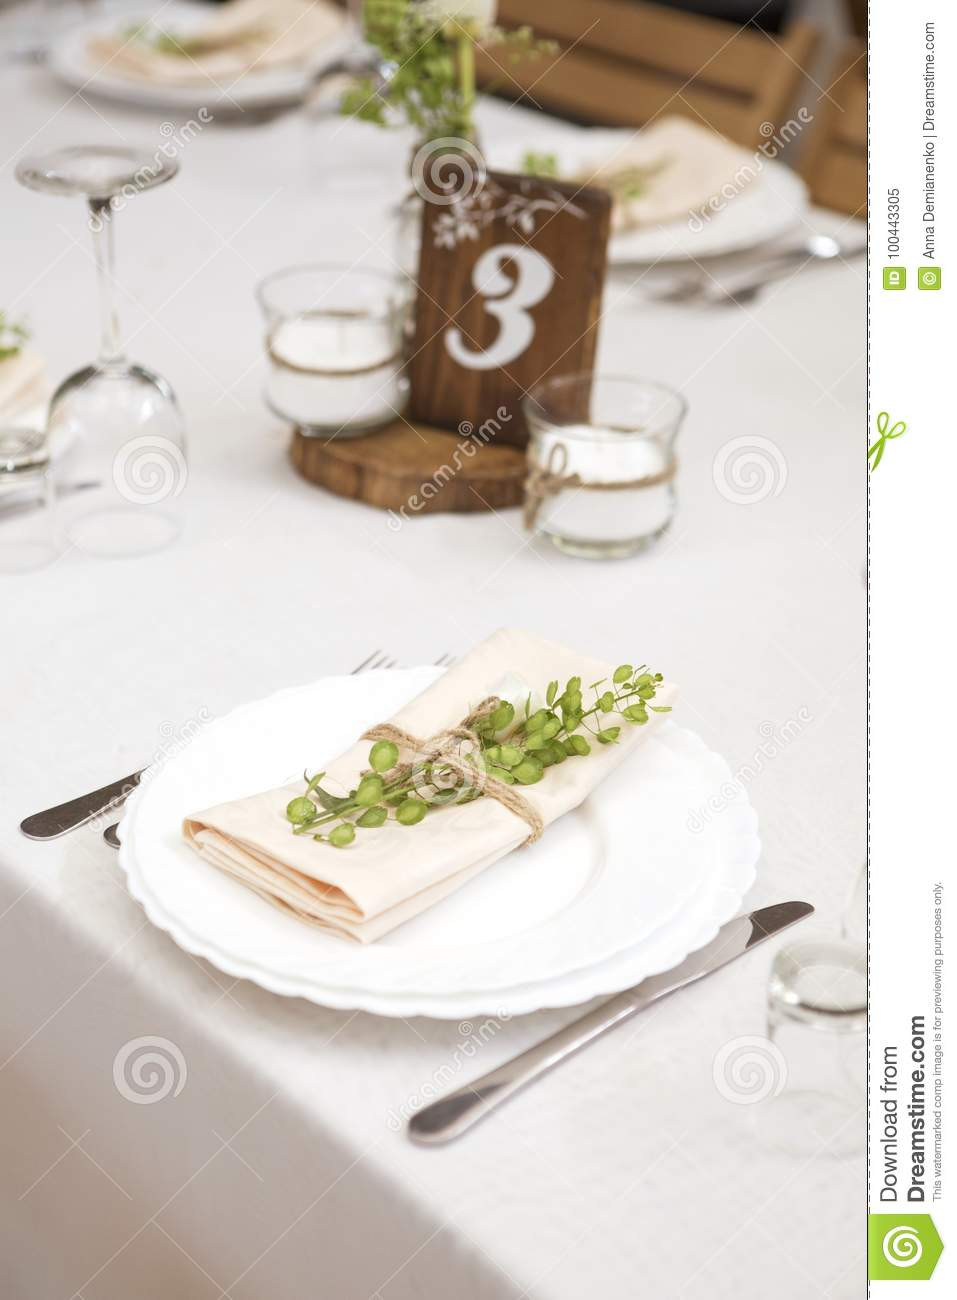 Simple But Luxury Rich Table Setting For A Wedding Celebration I